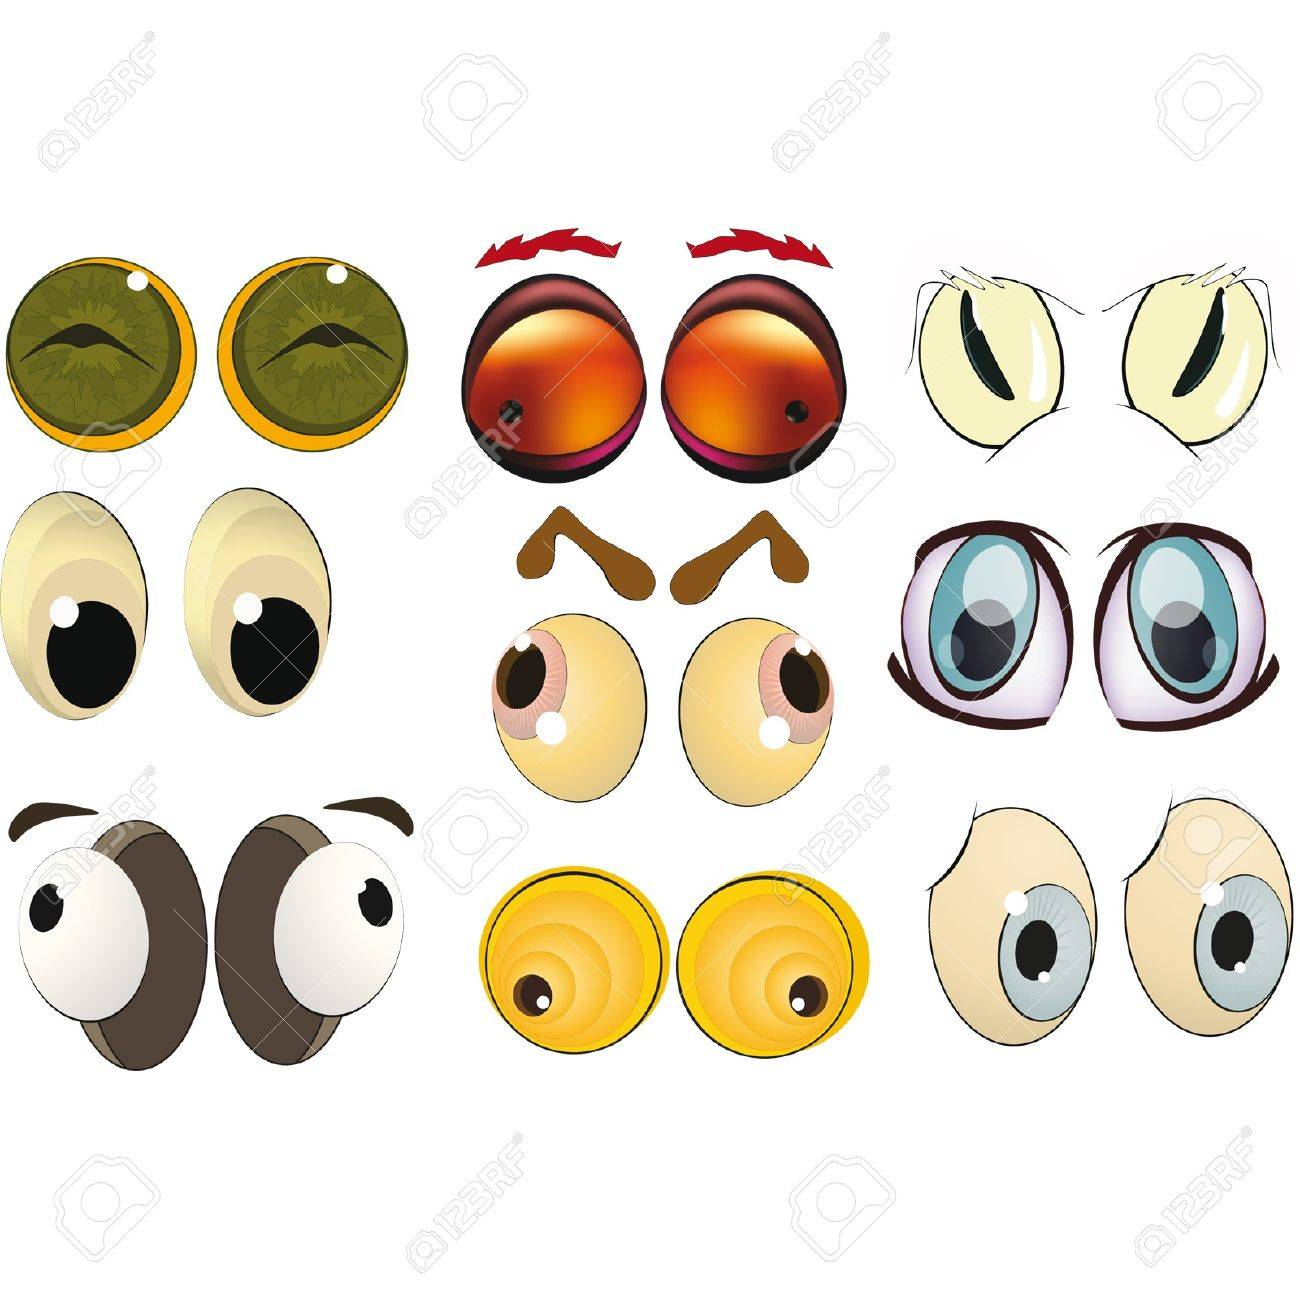 The complete set of the drawn eyes Stock Vector - 12801764